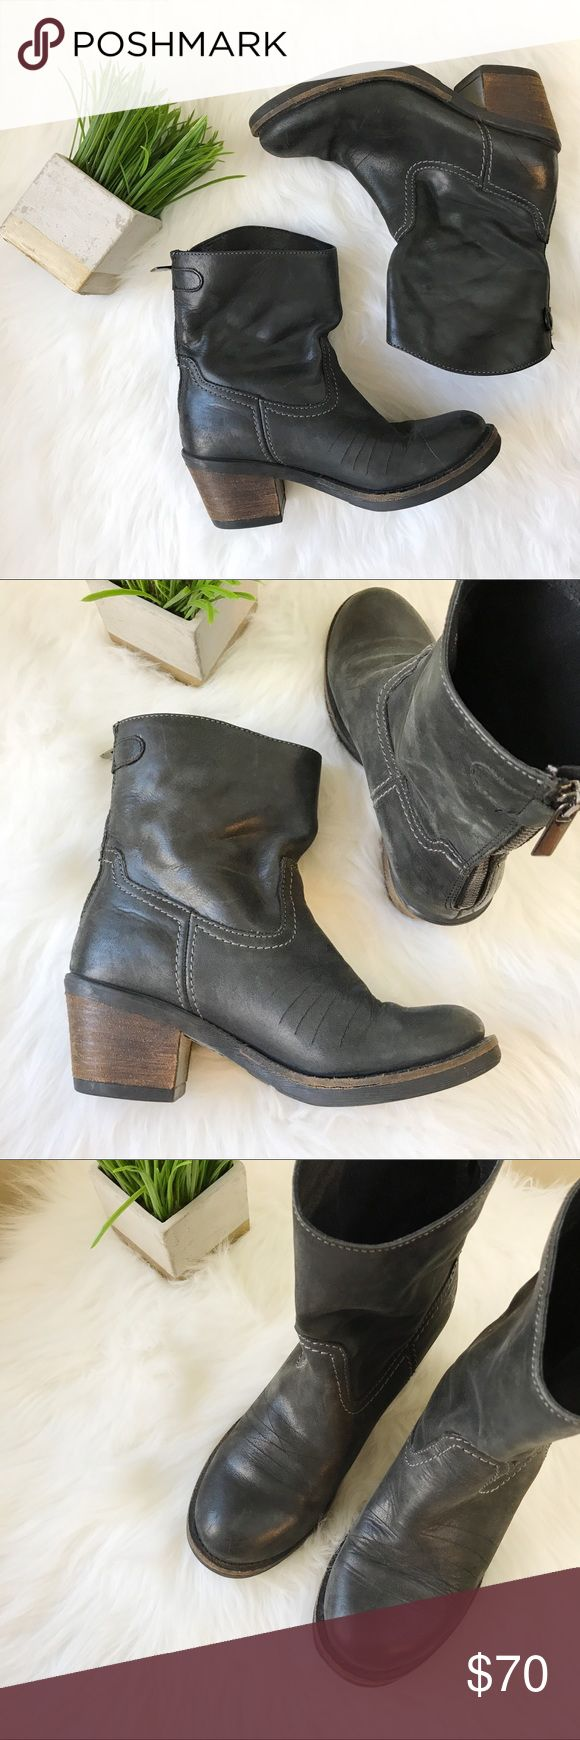 7 | Black Steve Madden Gunter Boots Black leather mid calf Steve Madden boots. Named Gunter, size women's 7. Zip and button detail in back. Steve Madden Shoes Ankle Boots & Booties